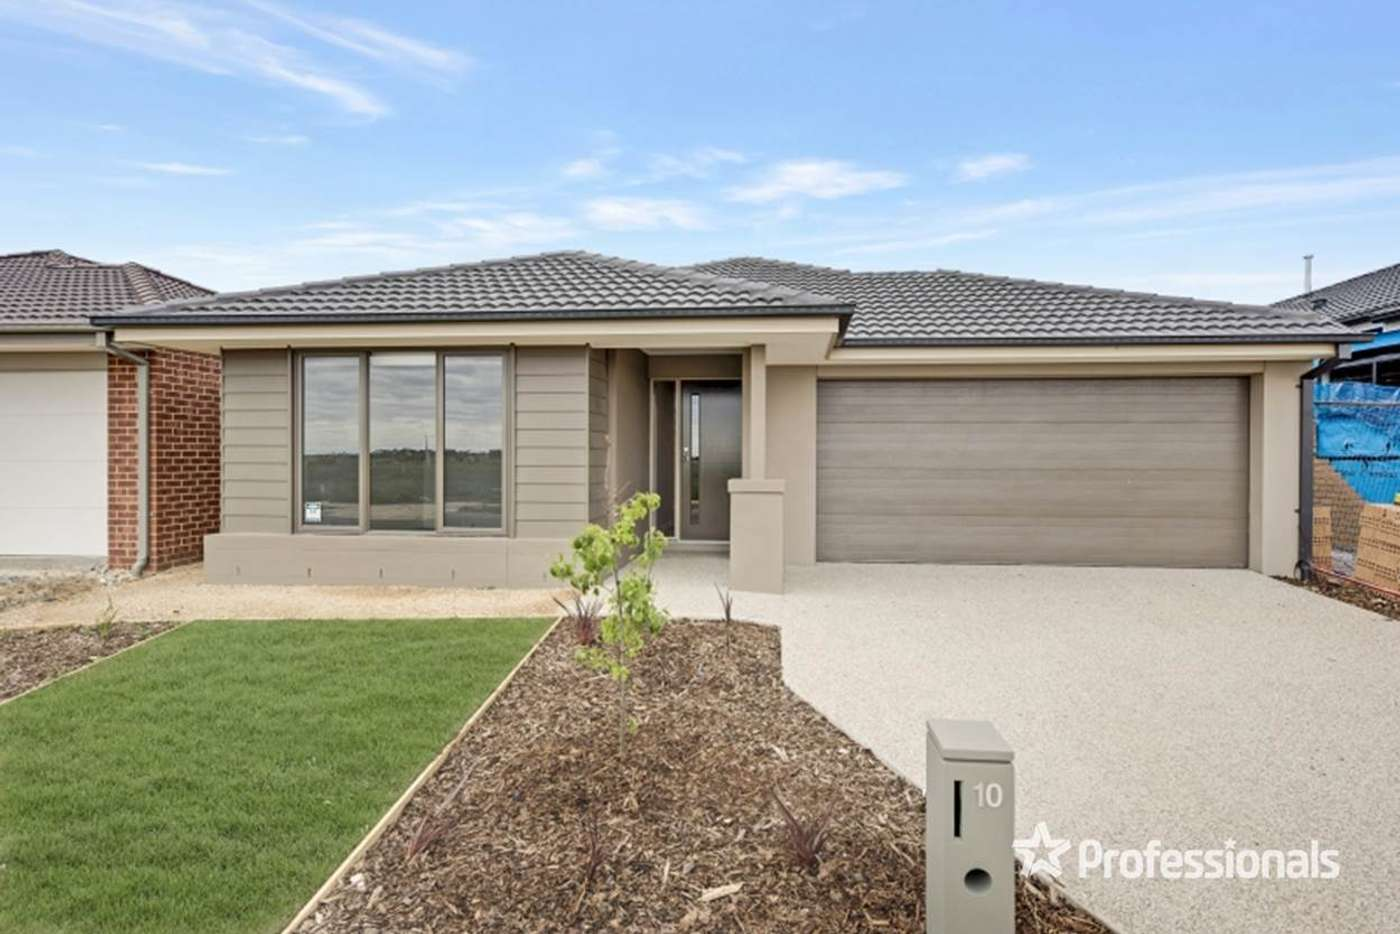 Main view of Homely house listing, 10 Plumstead Street, Wyndham Vale VIC 3024